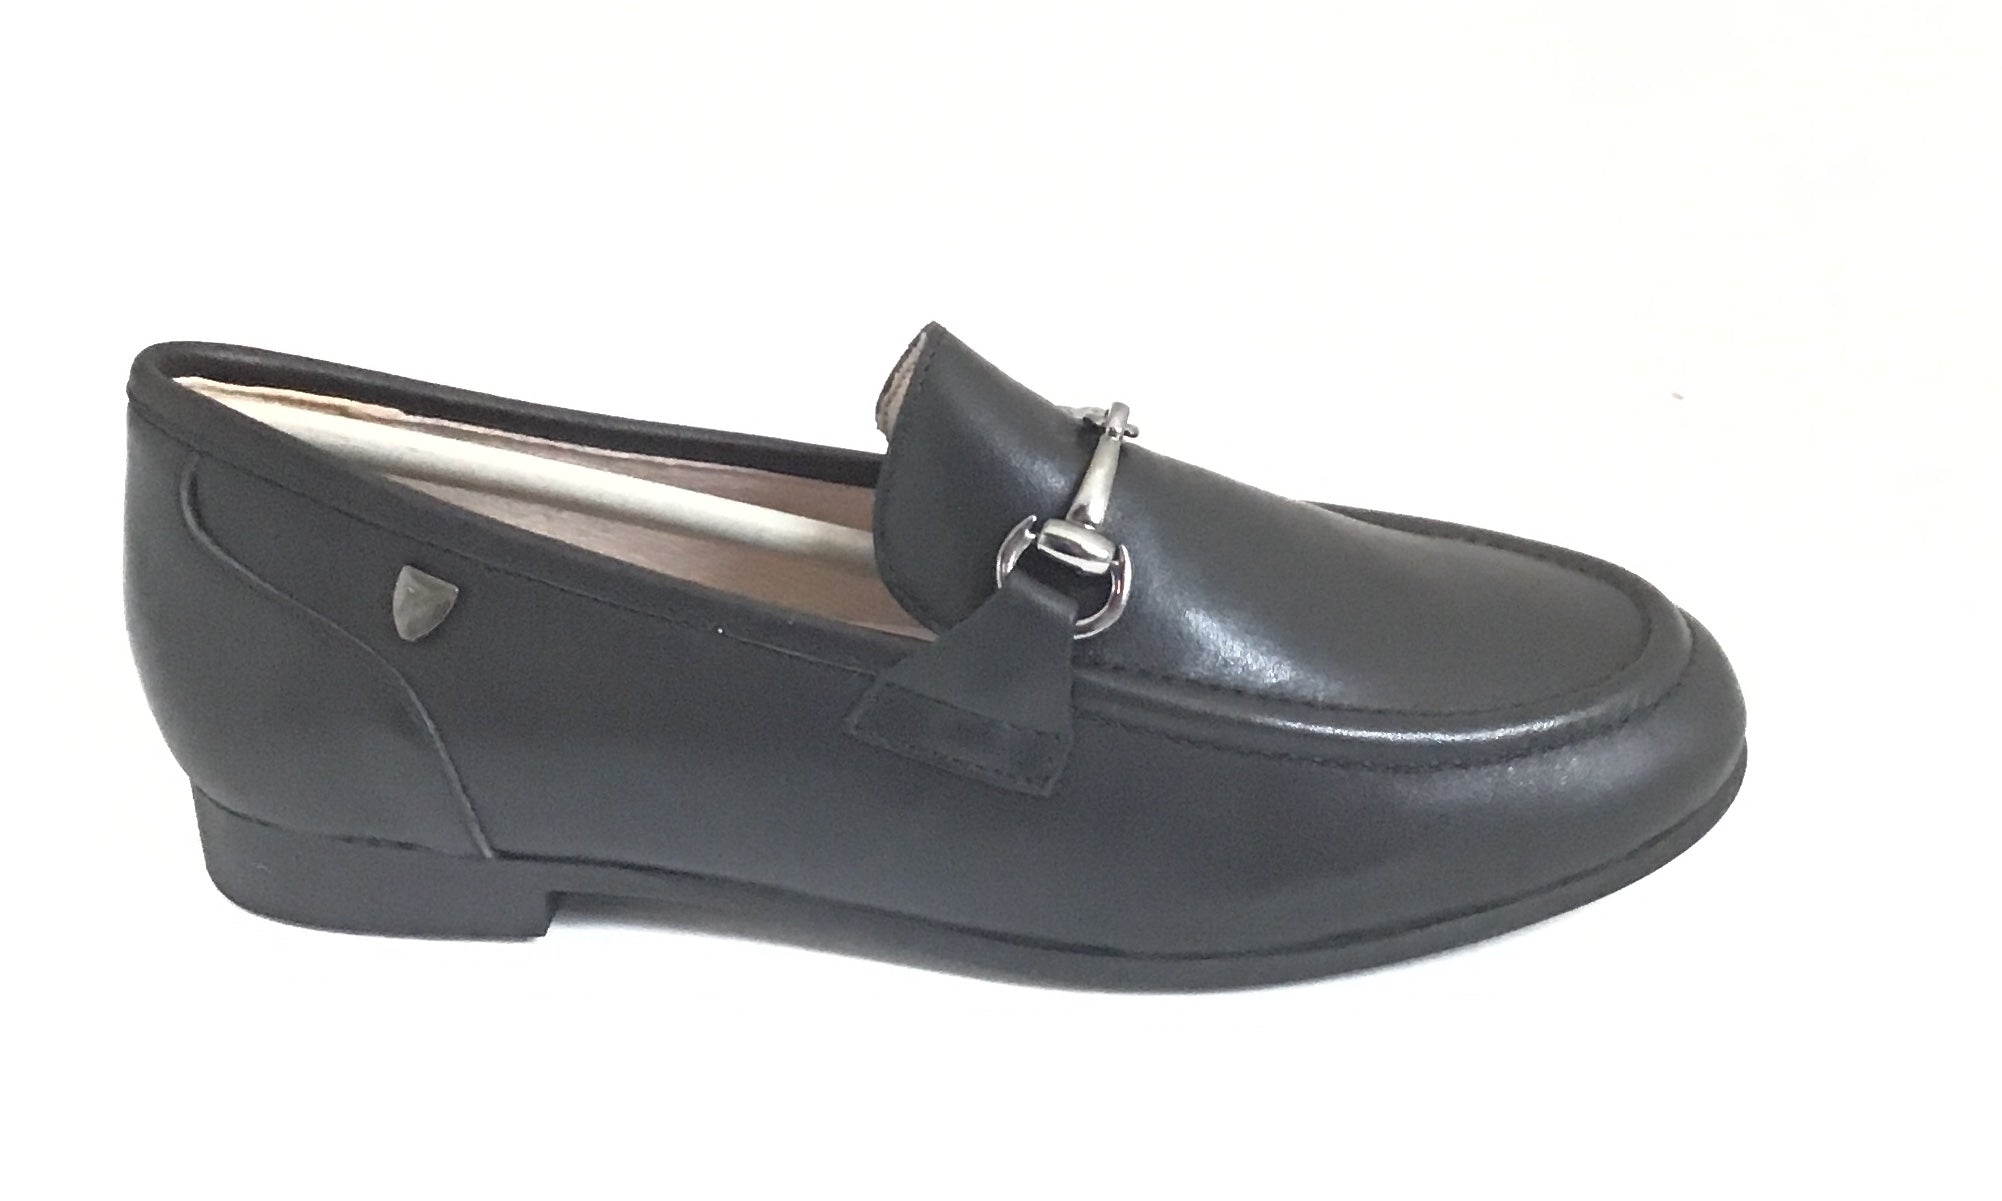 Venettini Black Leather Shoe With Chain